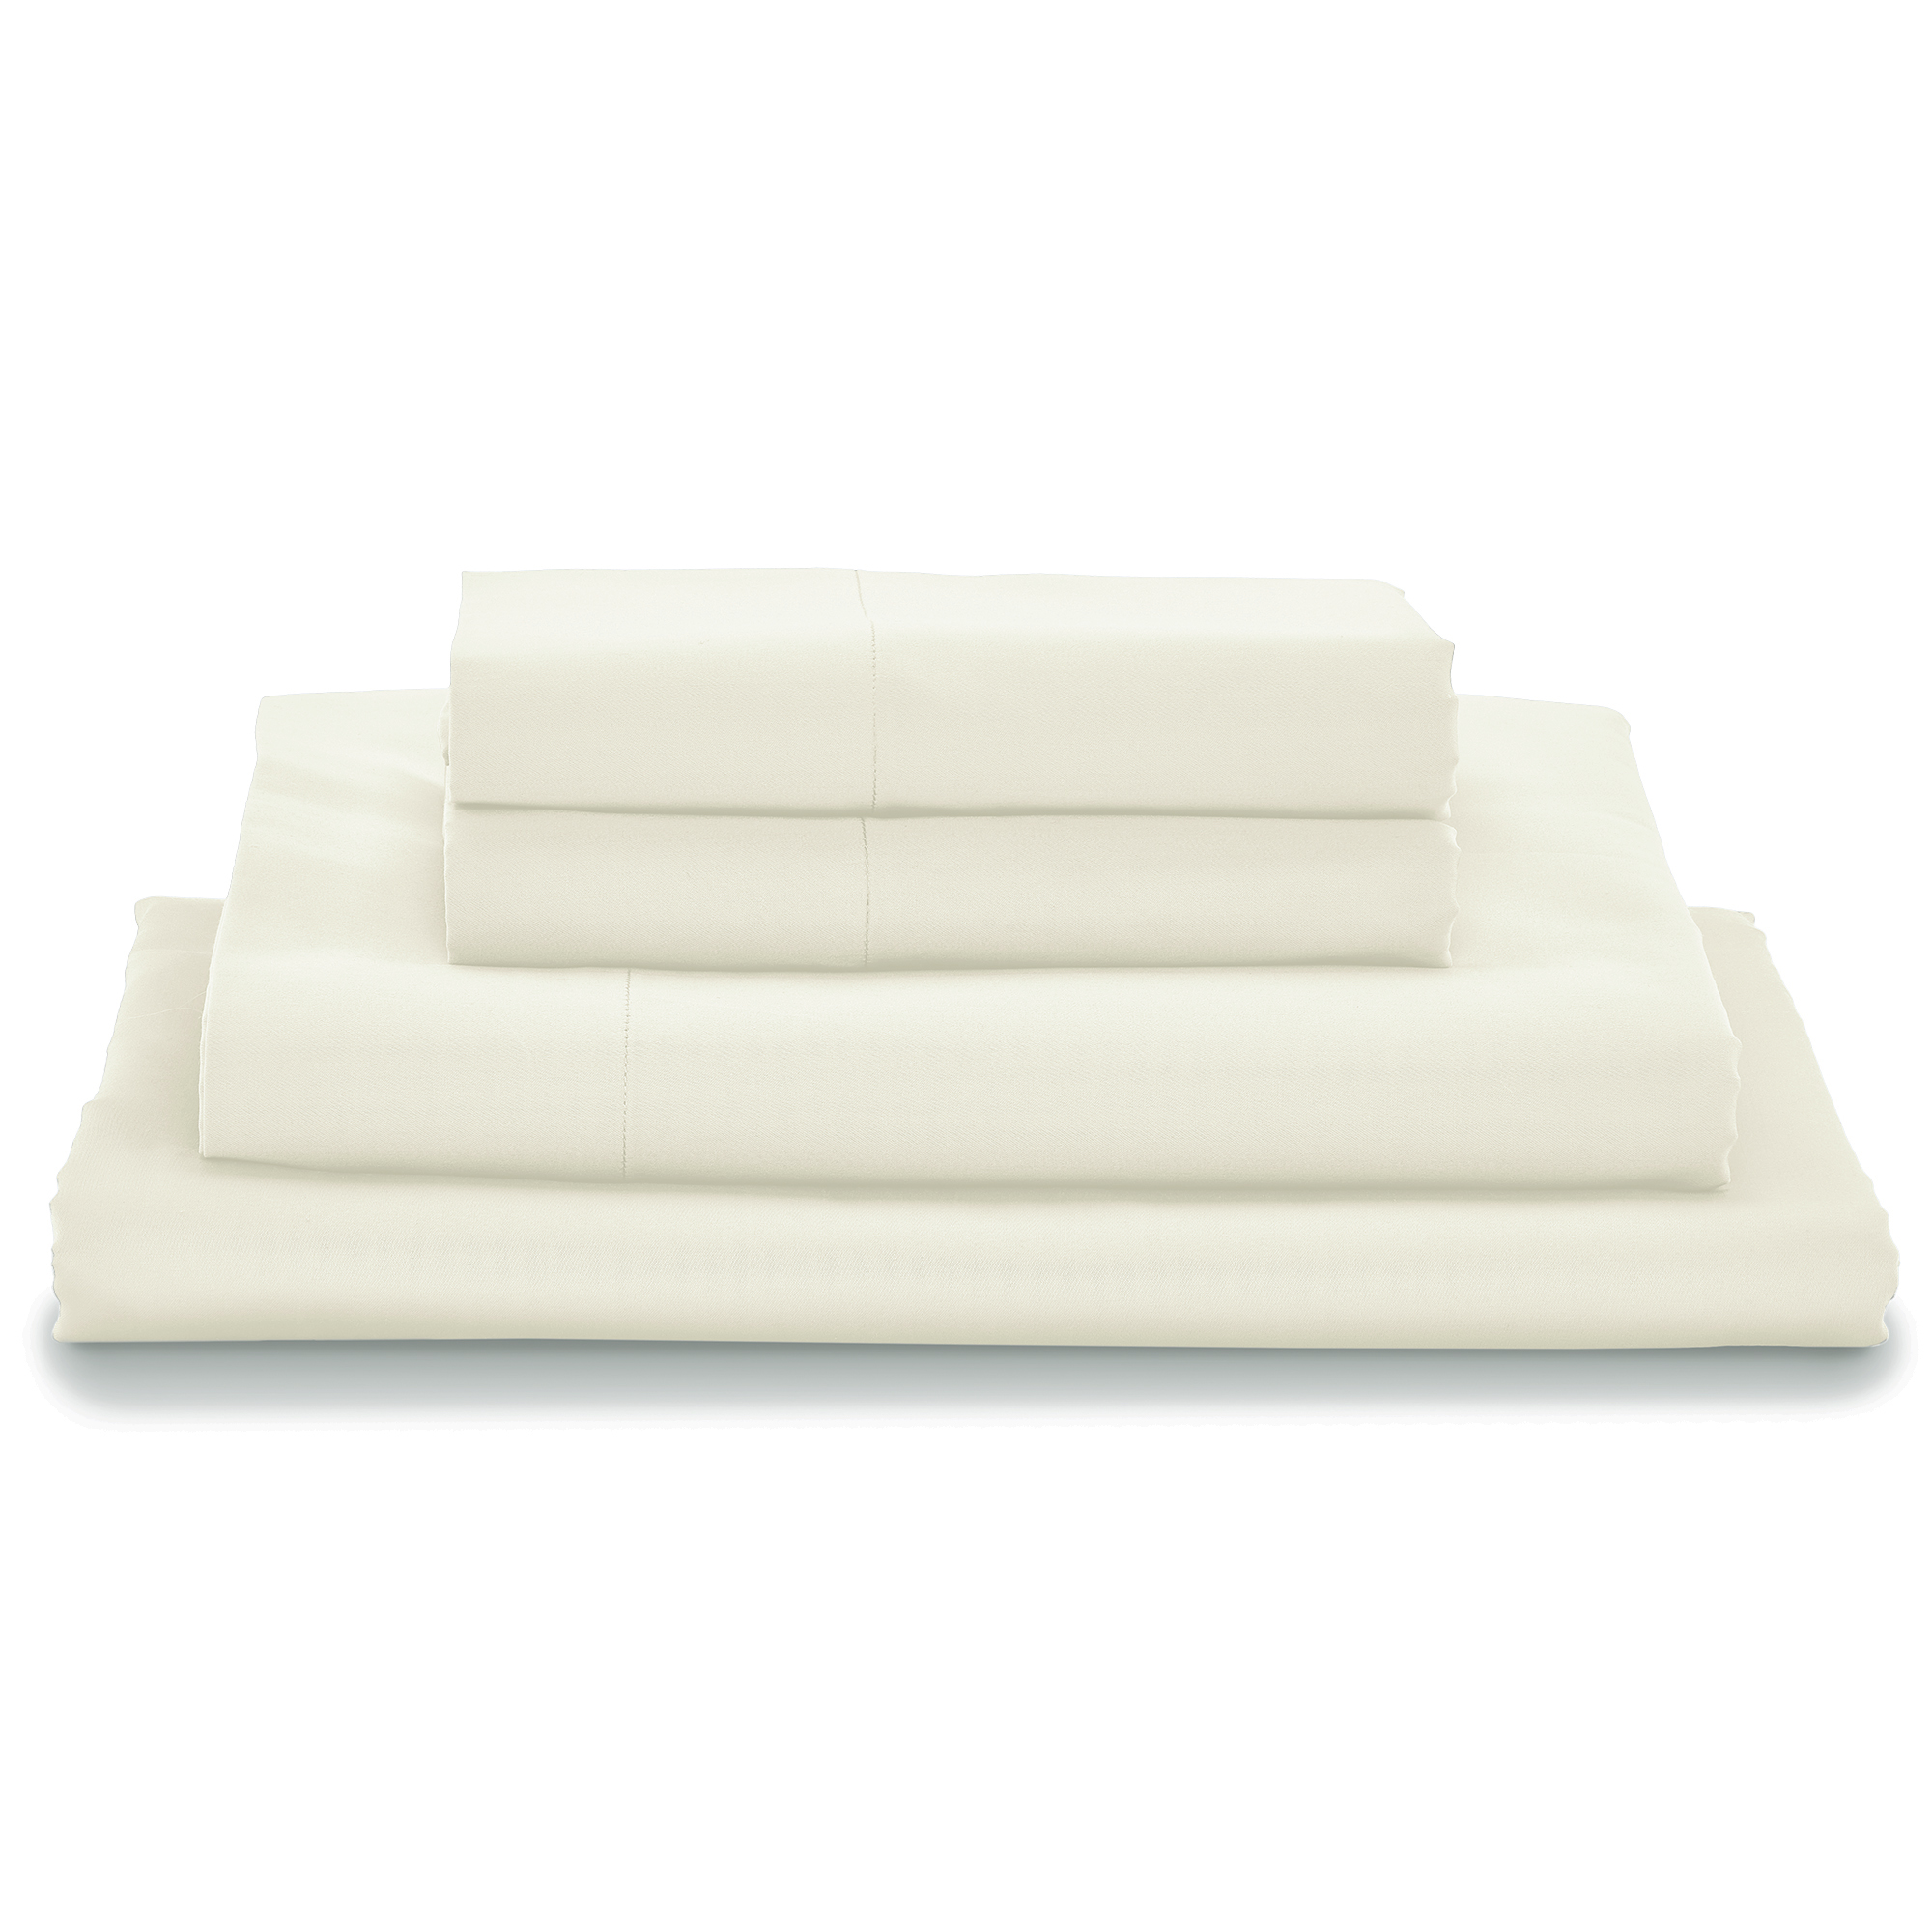 my pillow bed sheets queen ivory long staple cotton giza dreams bed sheet set